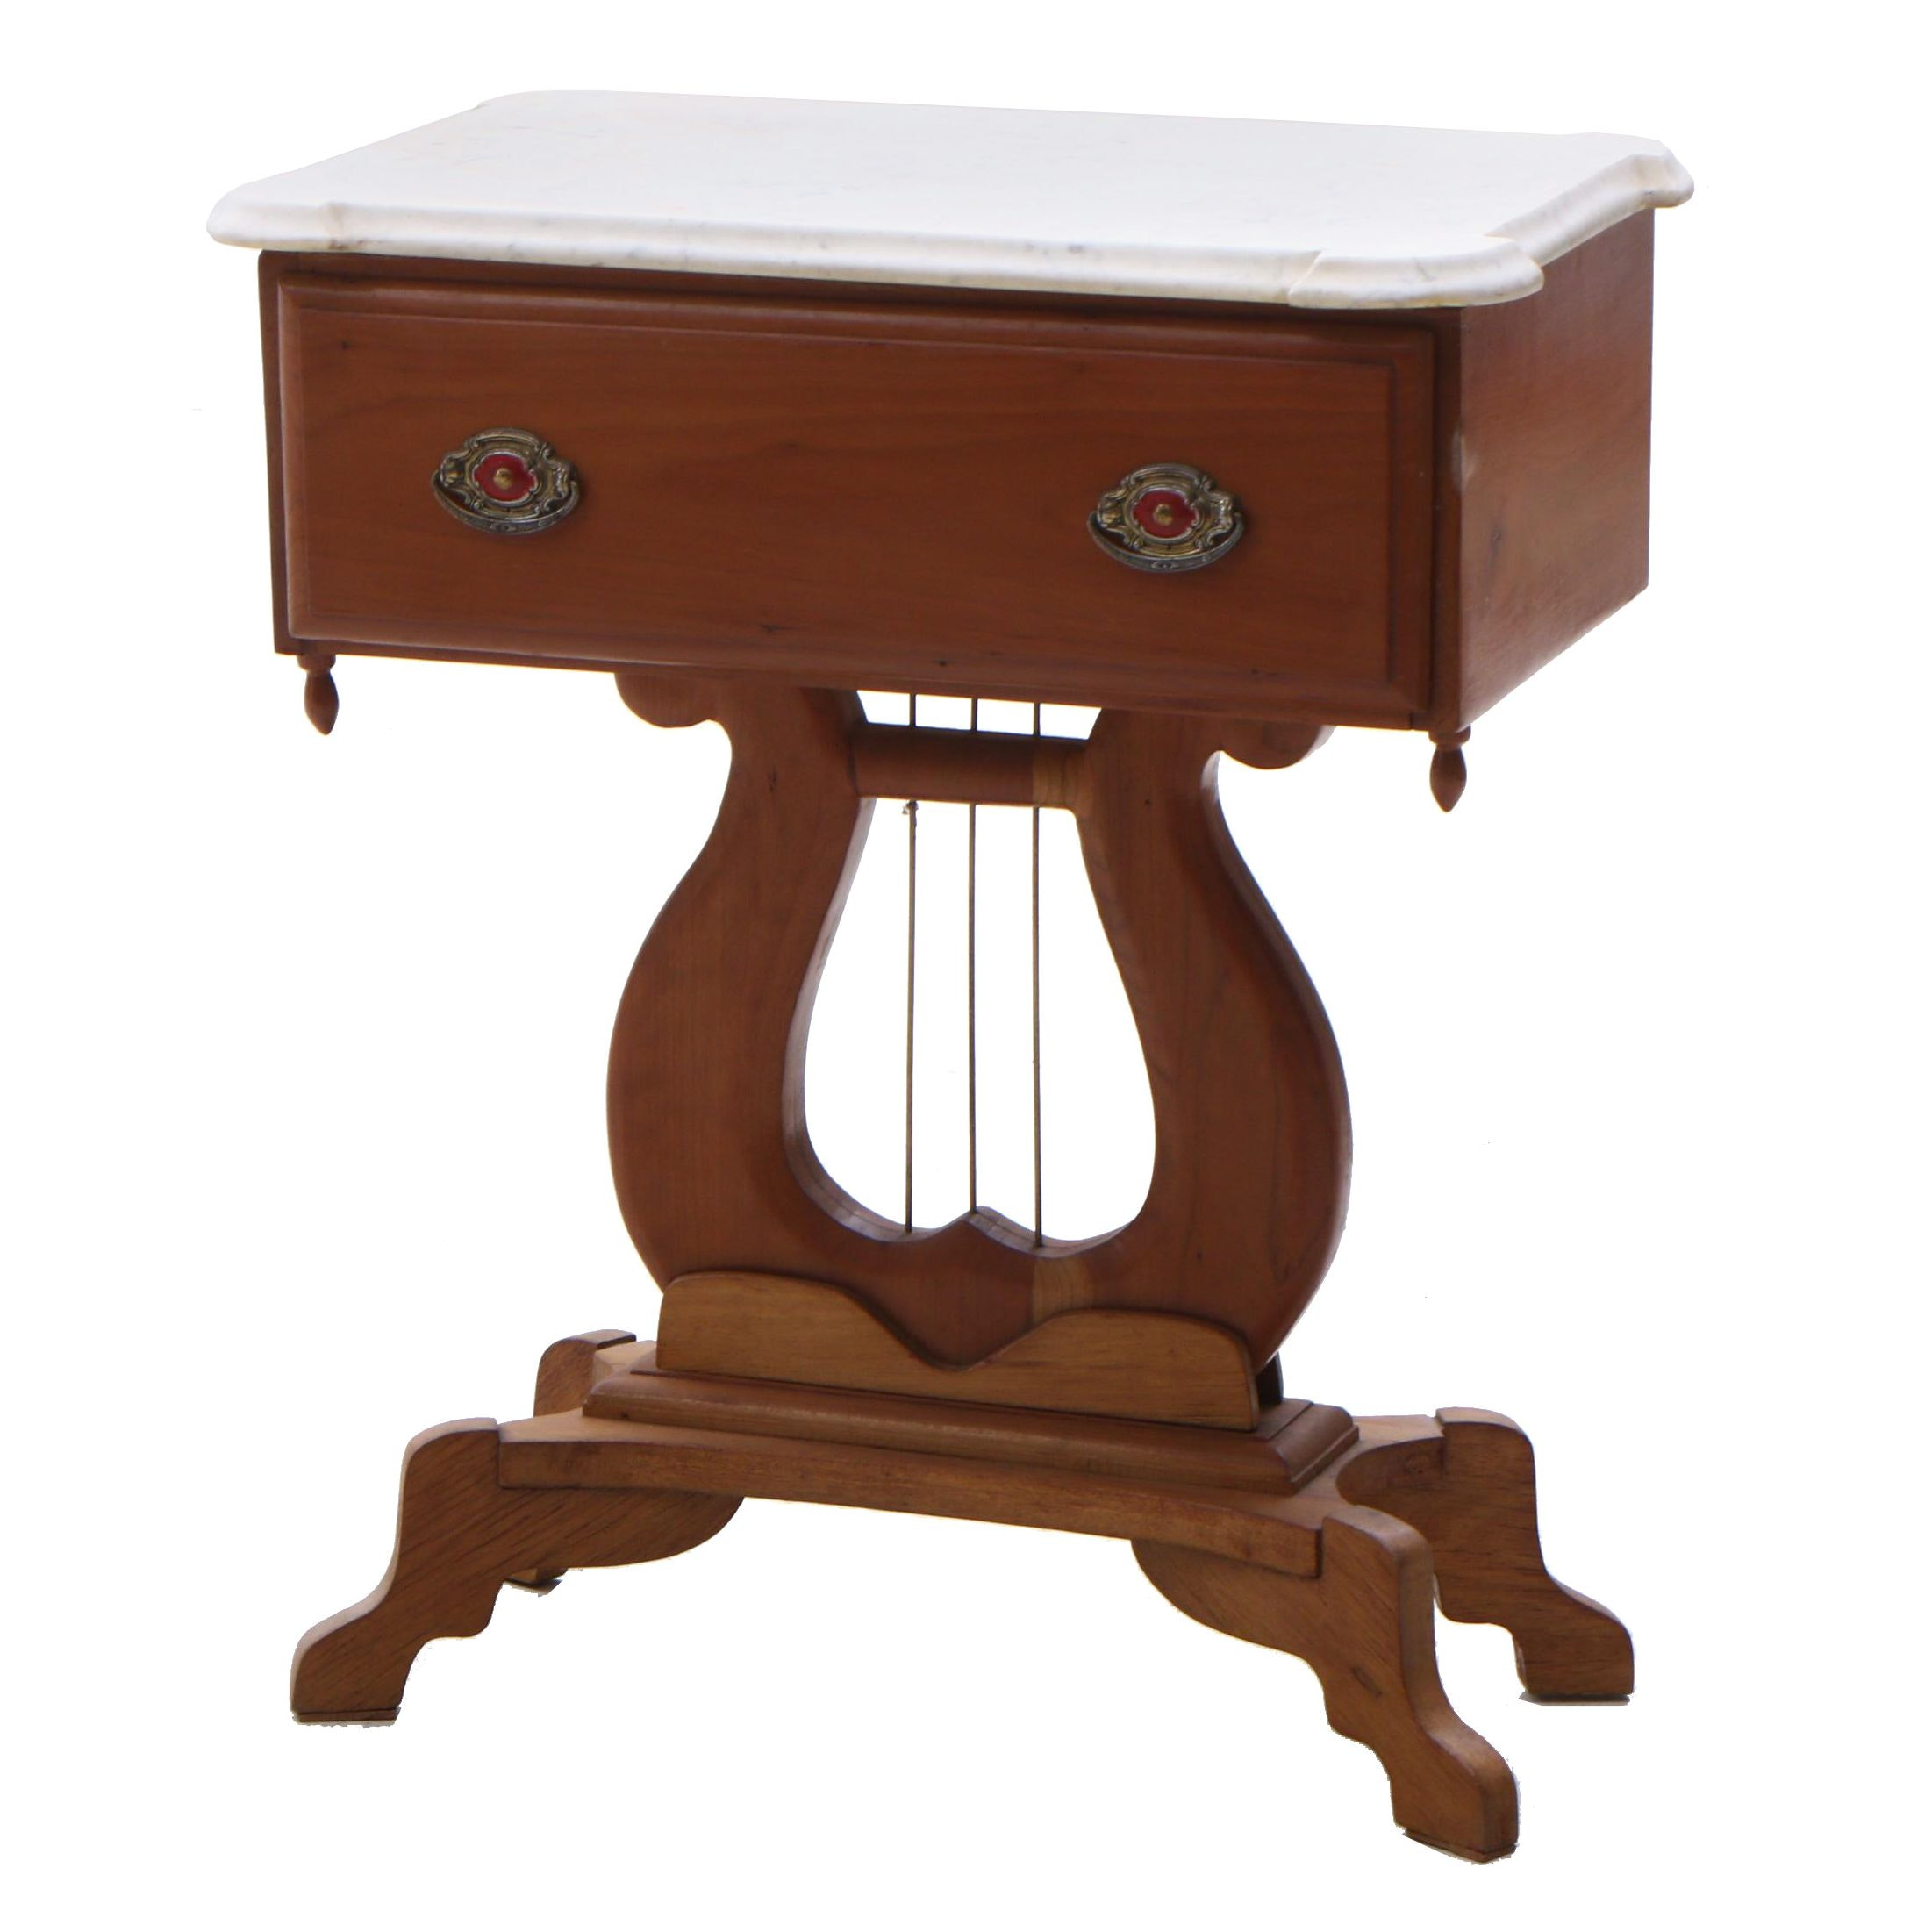 Empire Maple Lyre Base Accent Table, Mid 19th Century